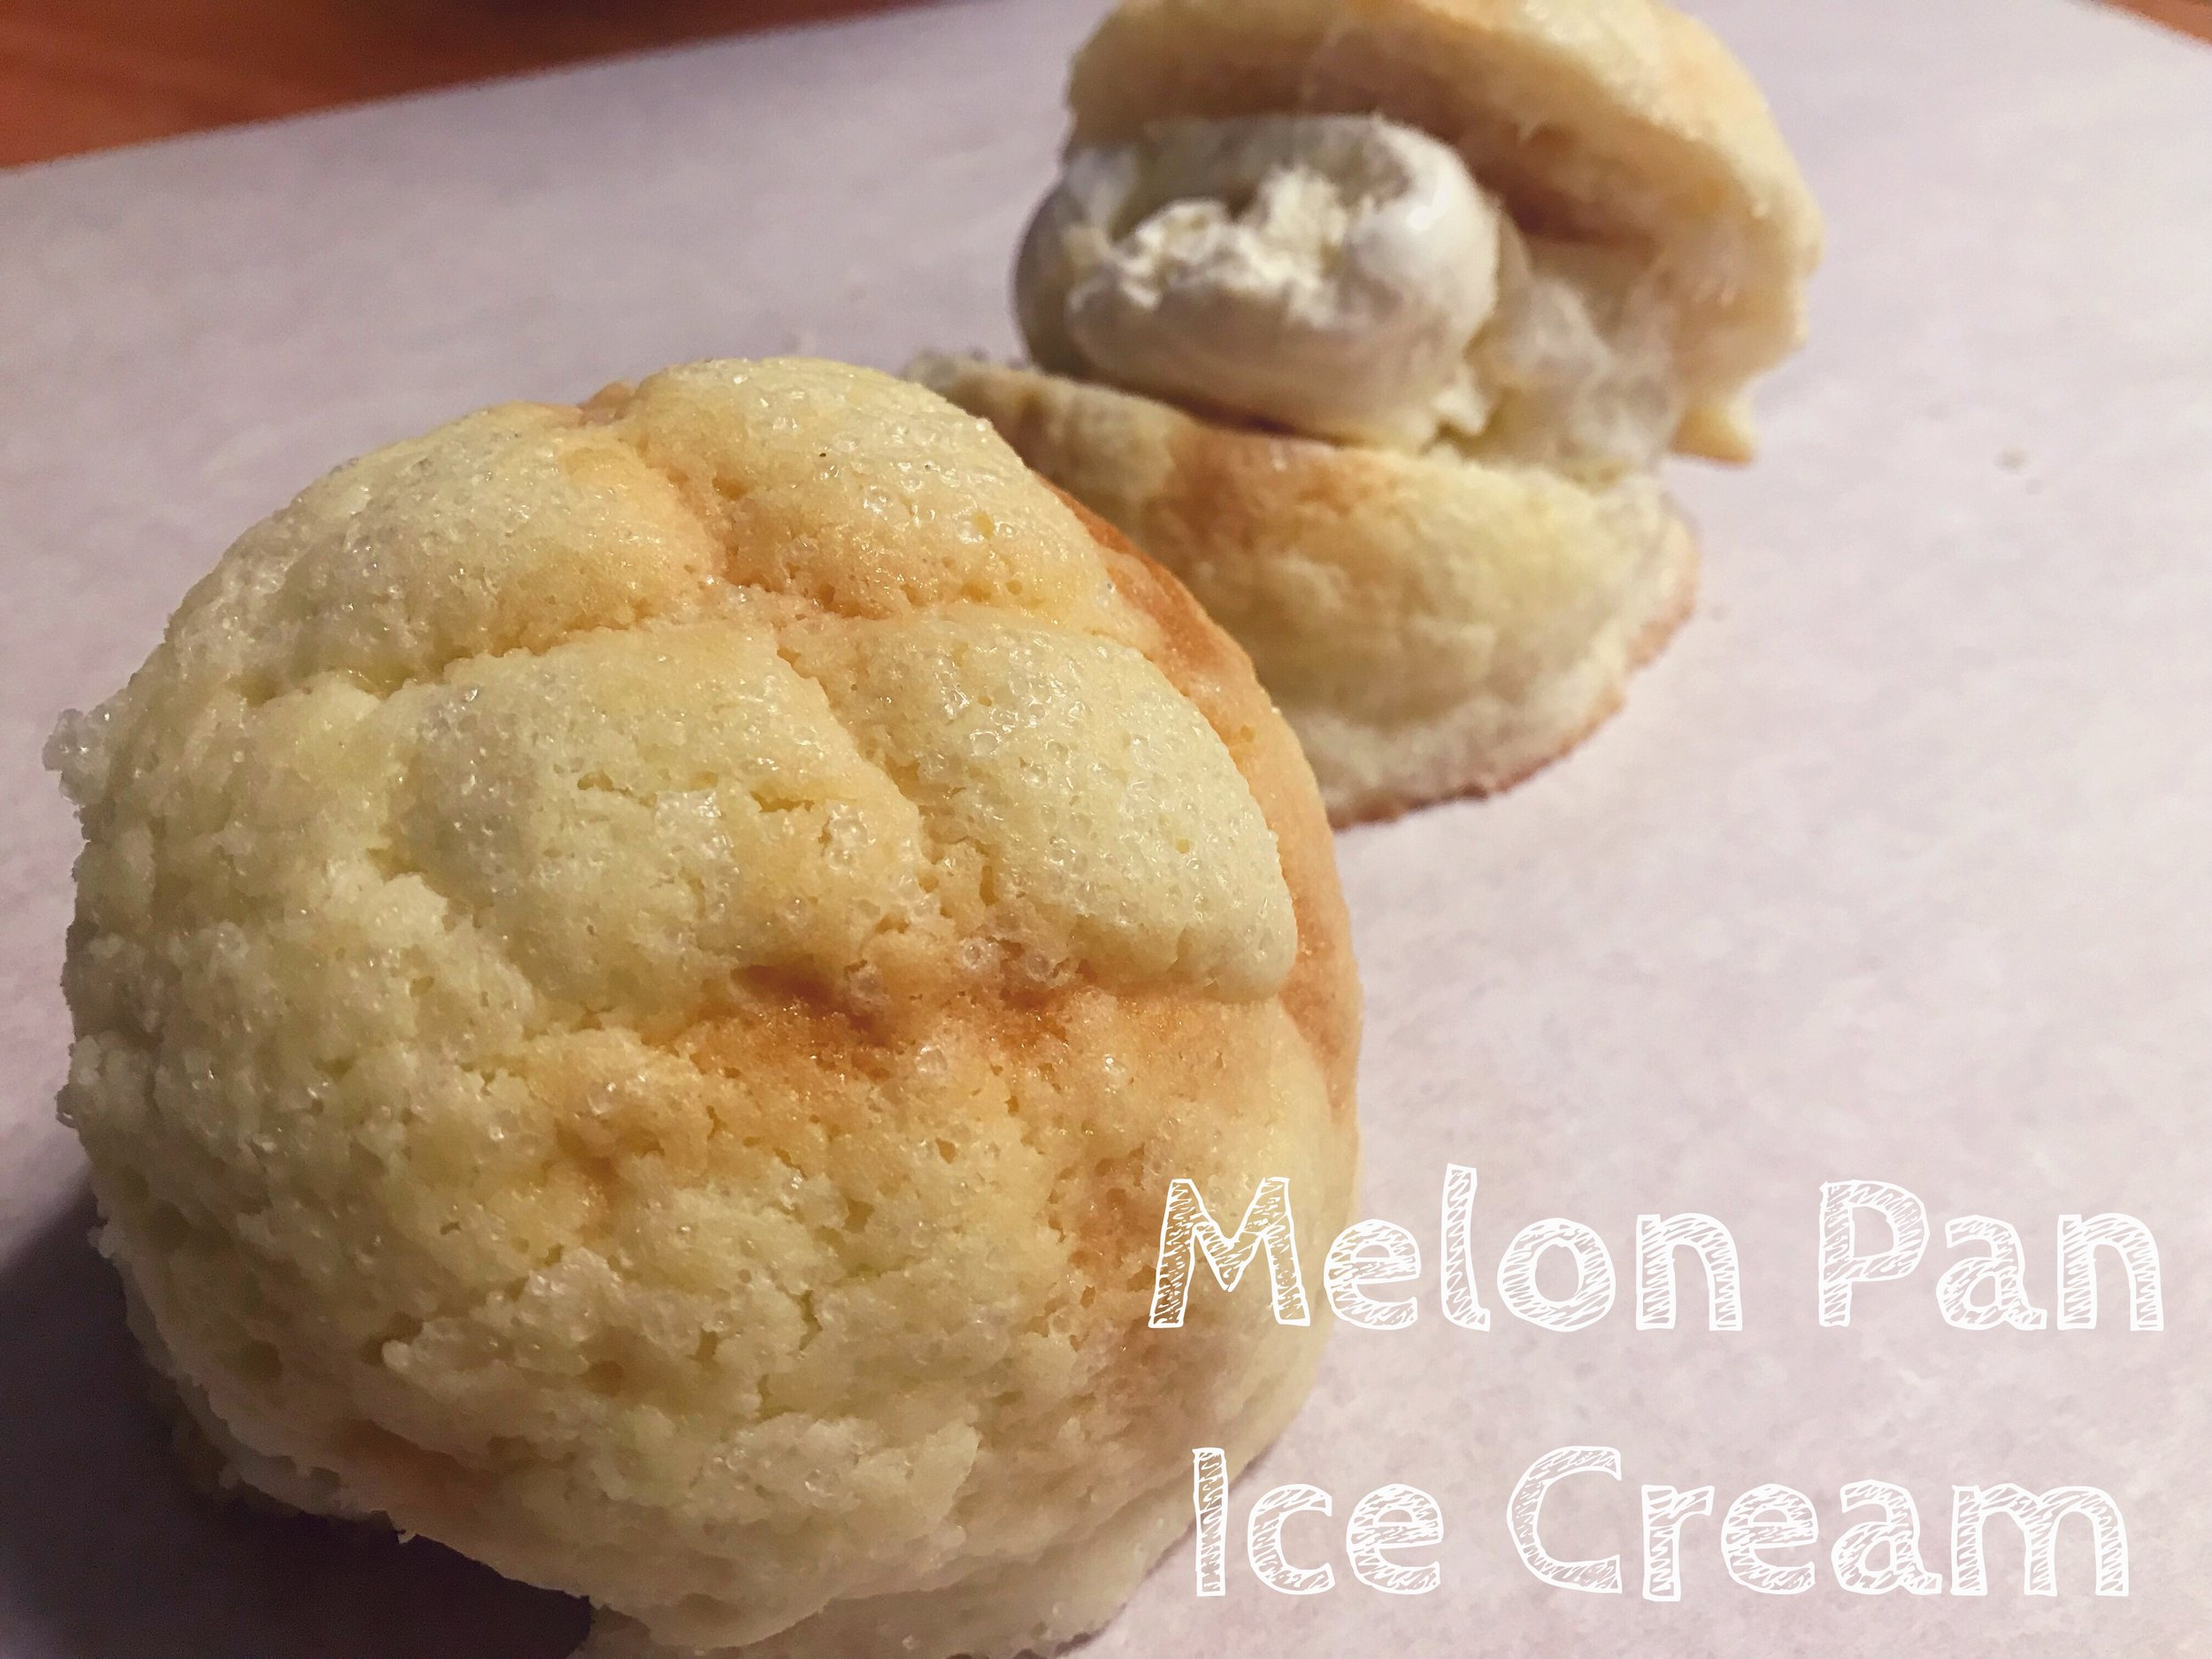 Melon Pan Ice Cream!   Freshly baked melon pan served with a scoop of ice cream: matcha (green tea), vanilla, or chocolate! The soft and slightly sweet melon pan goes perfectly with ice cream, a dessert you have to try!